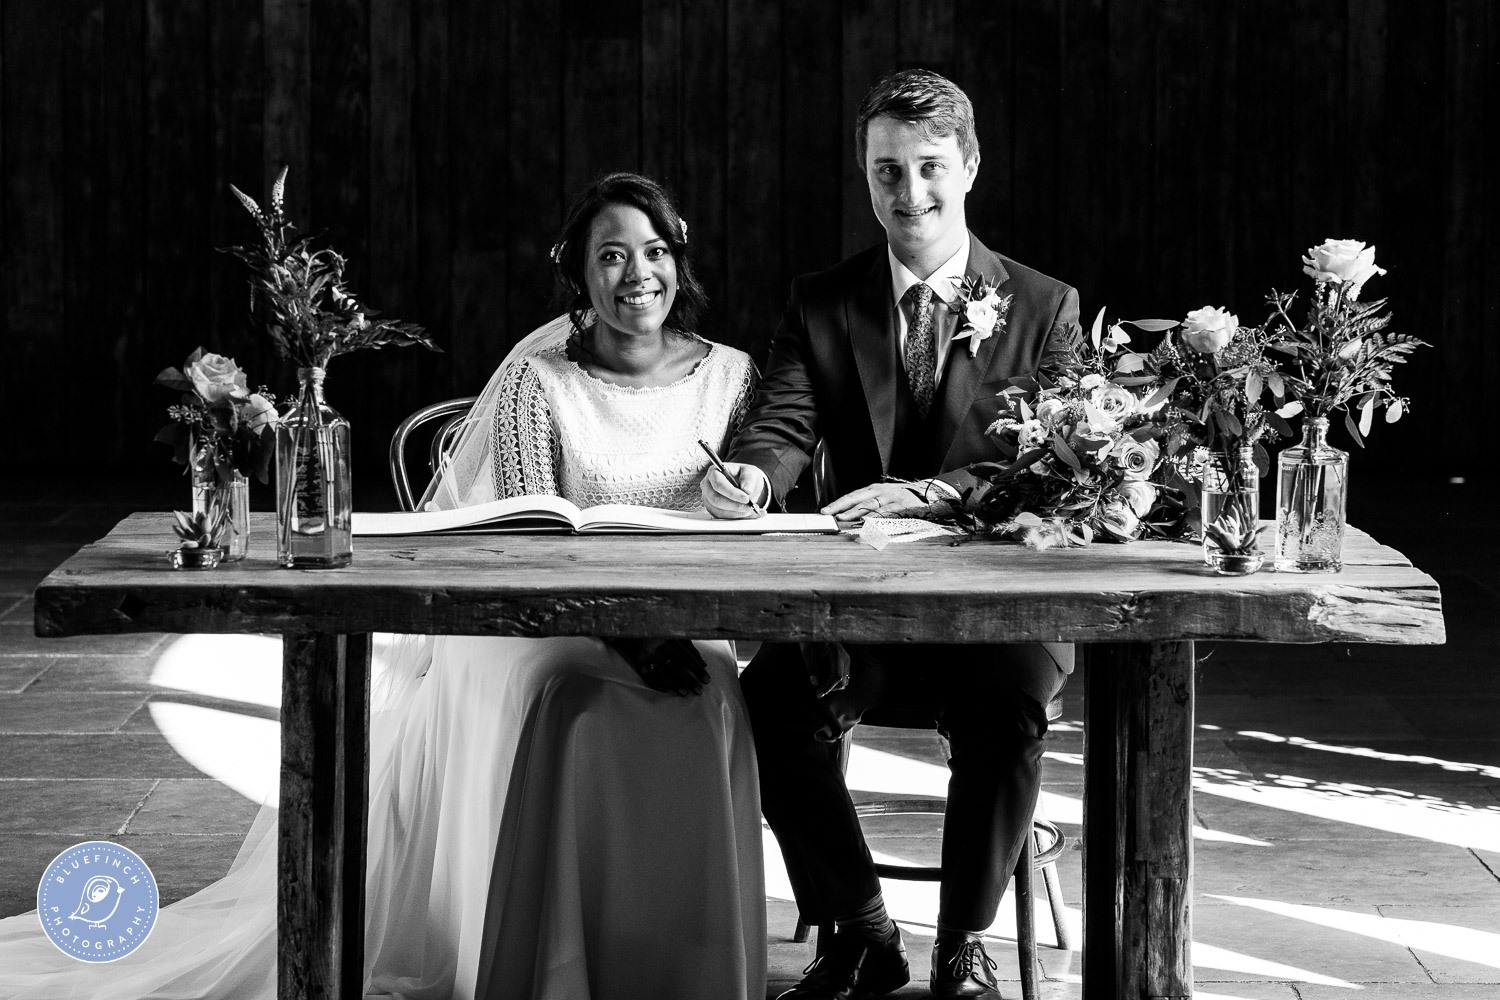 Robert & Georgia's Wedding Photography At Shustoke Barn